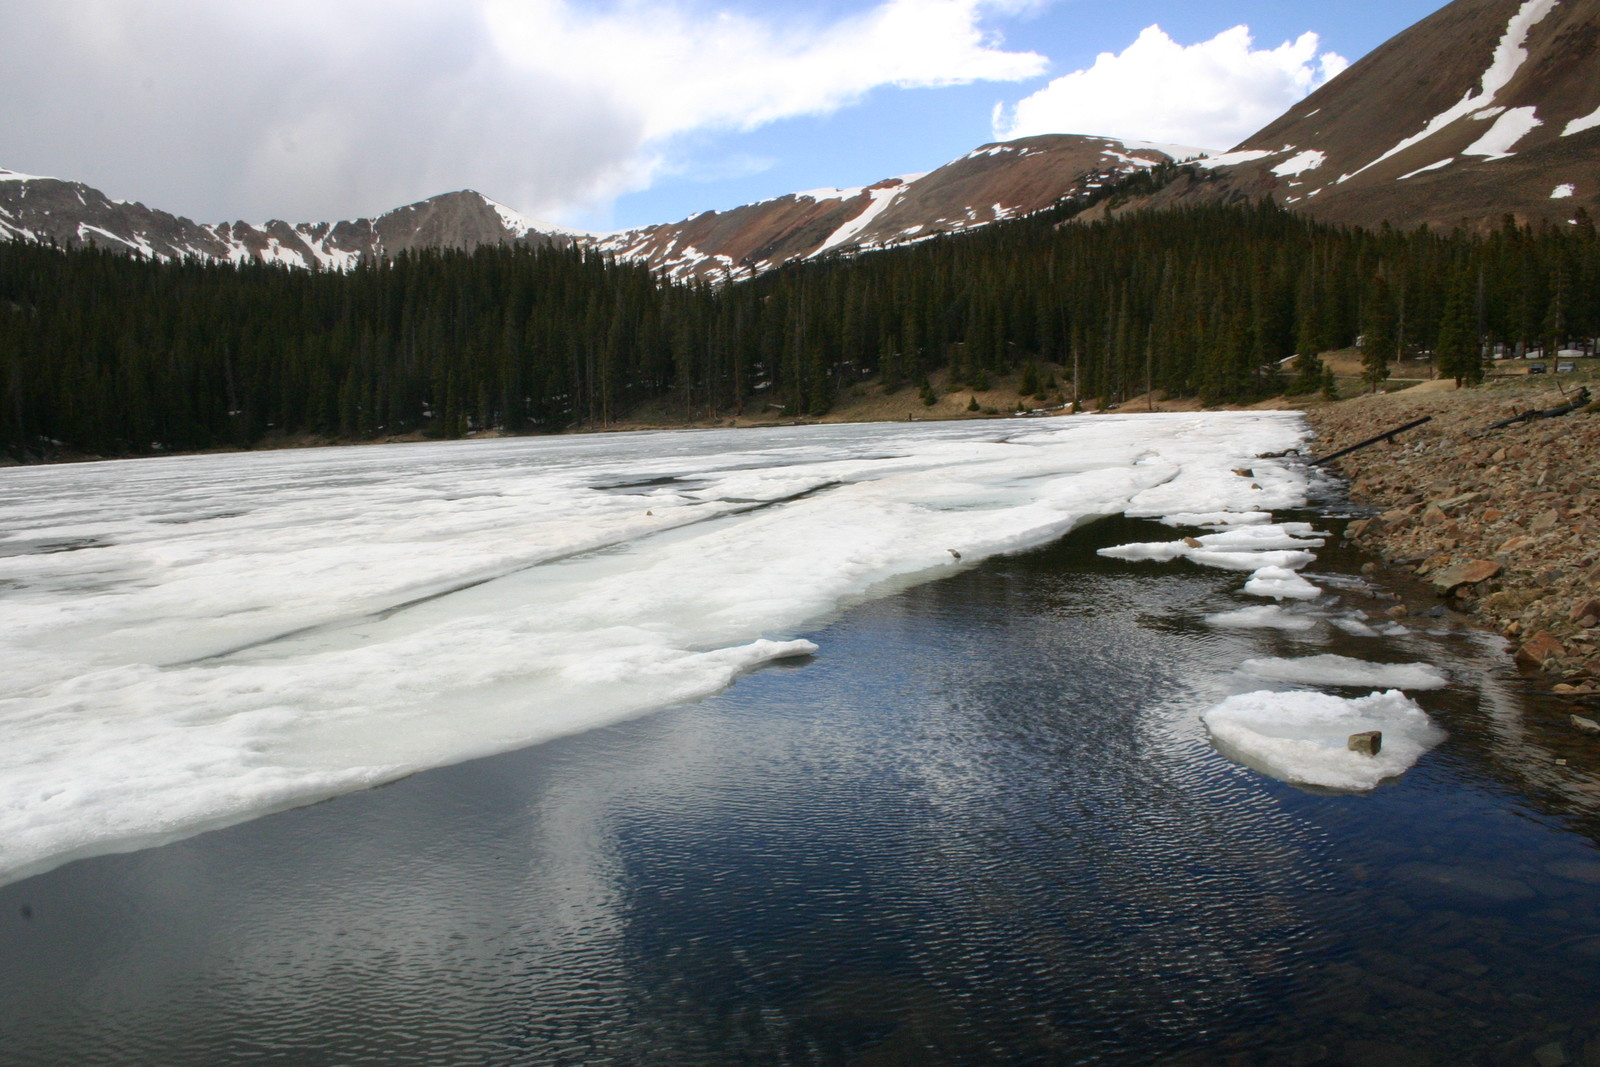 An ice covered lake that is melted on the shoreline, with tall dark evergreens on the back shore, with mountains in the background, and a partly cloudy blue sky